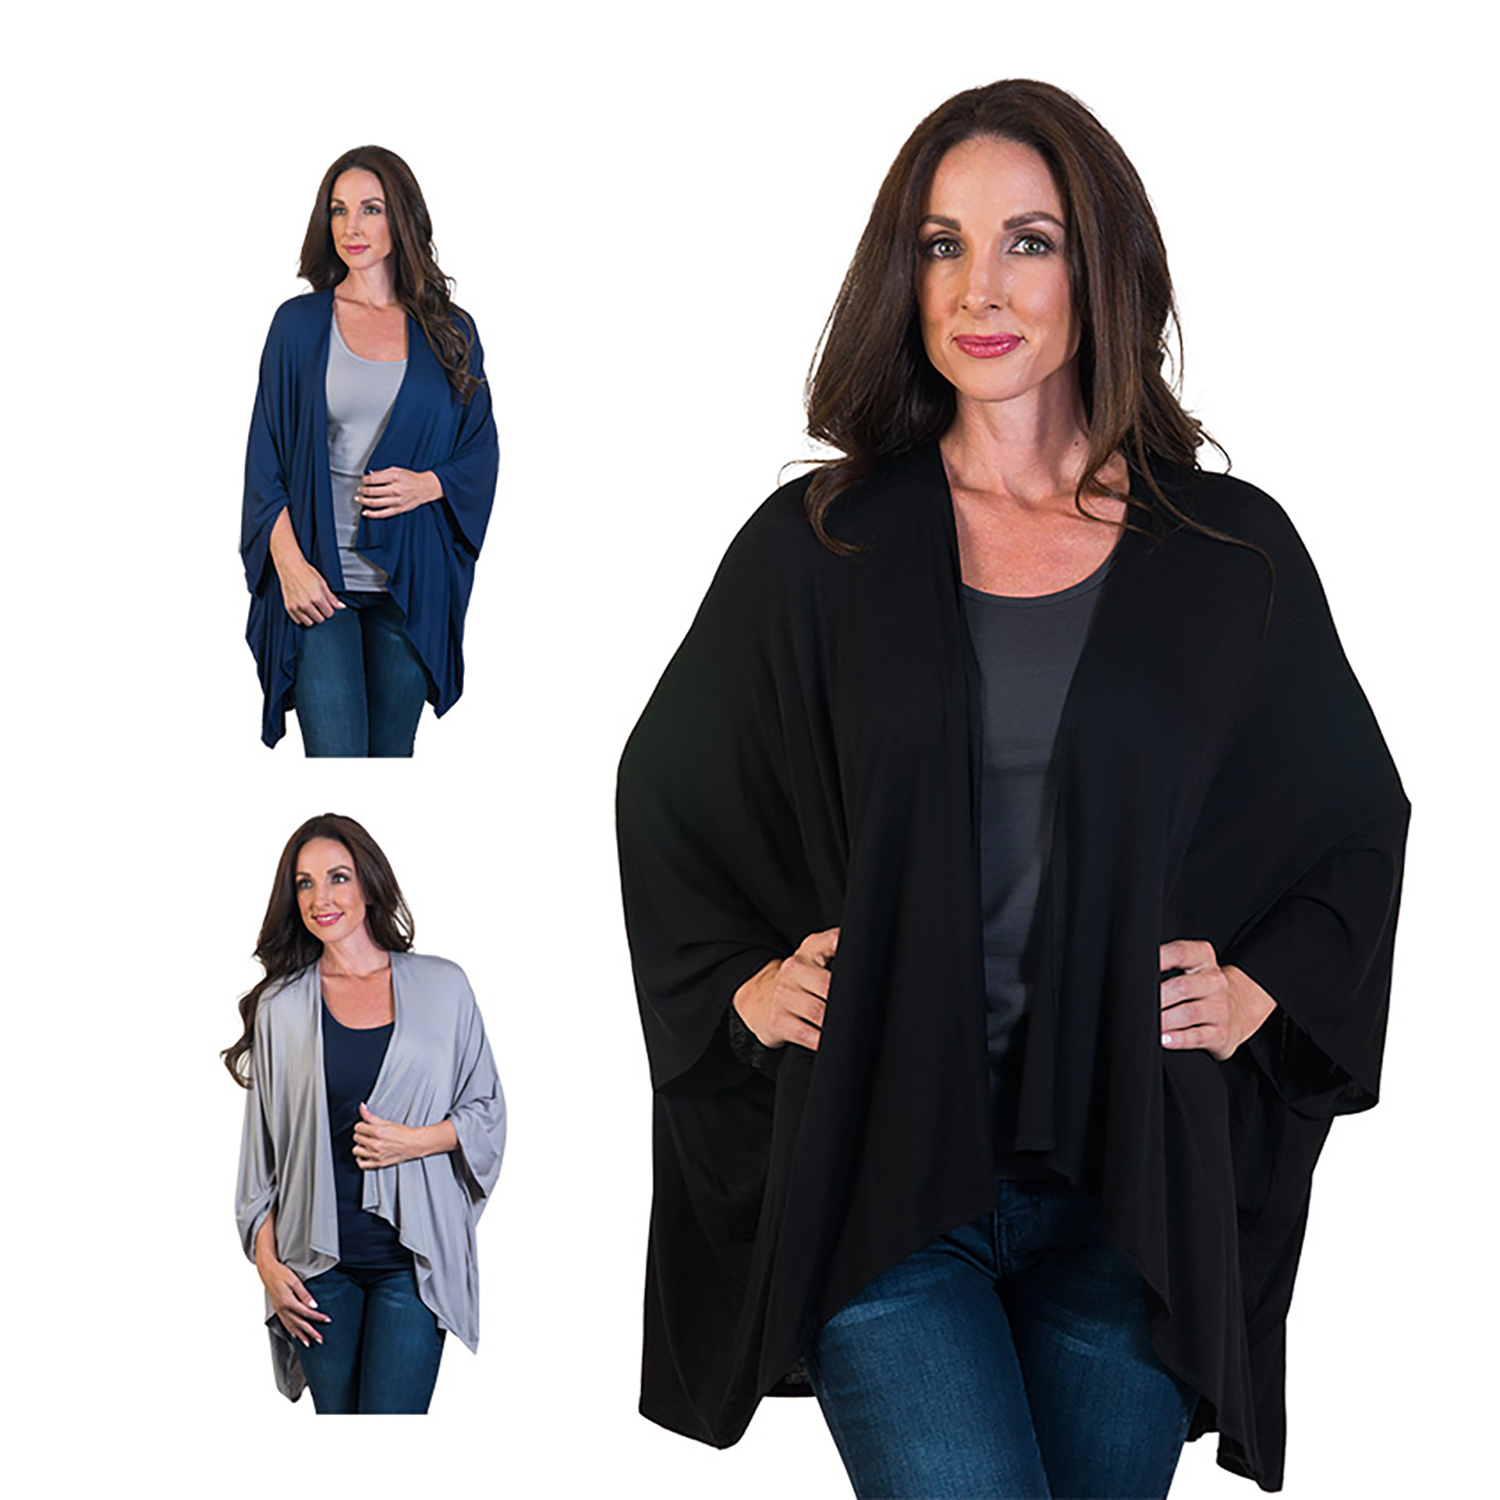 Agiato Women's One Piece Drape Cardigan 3-Pack